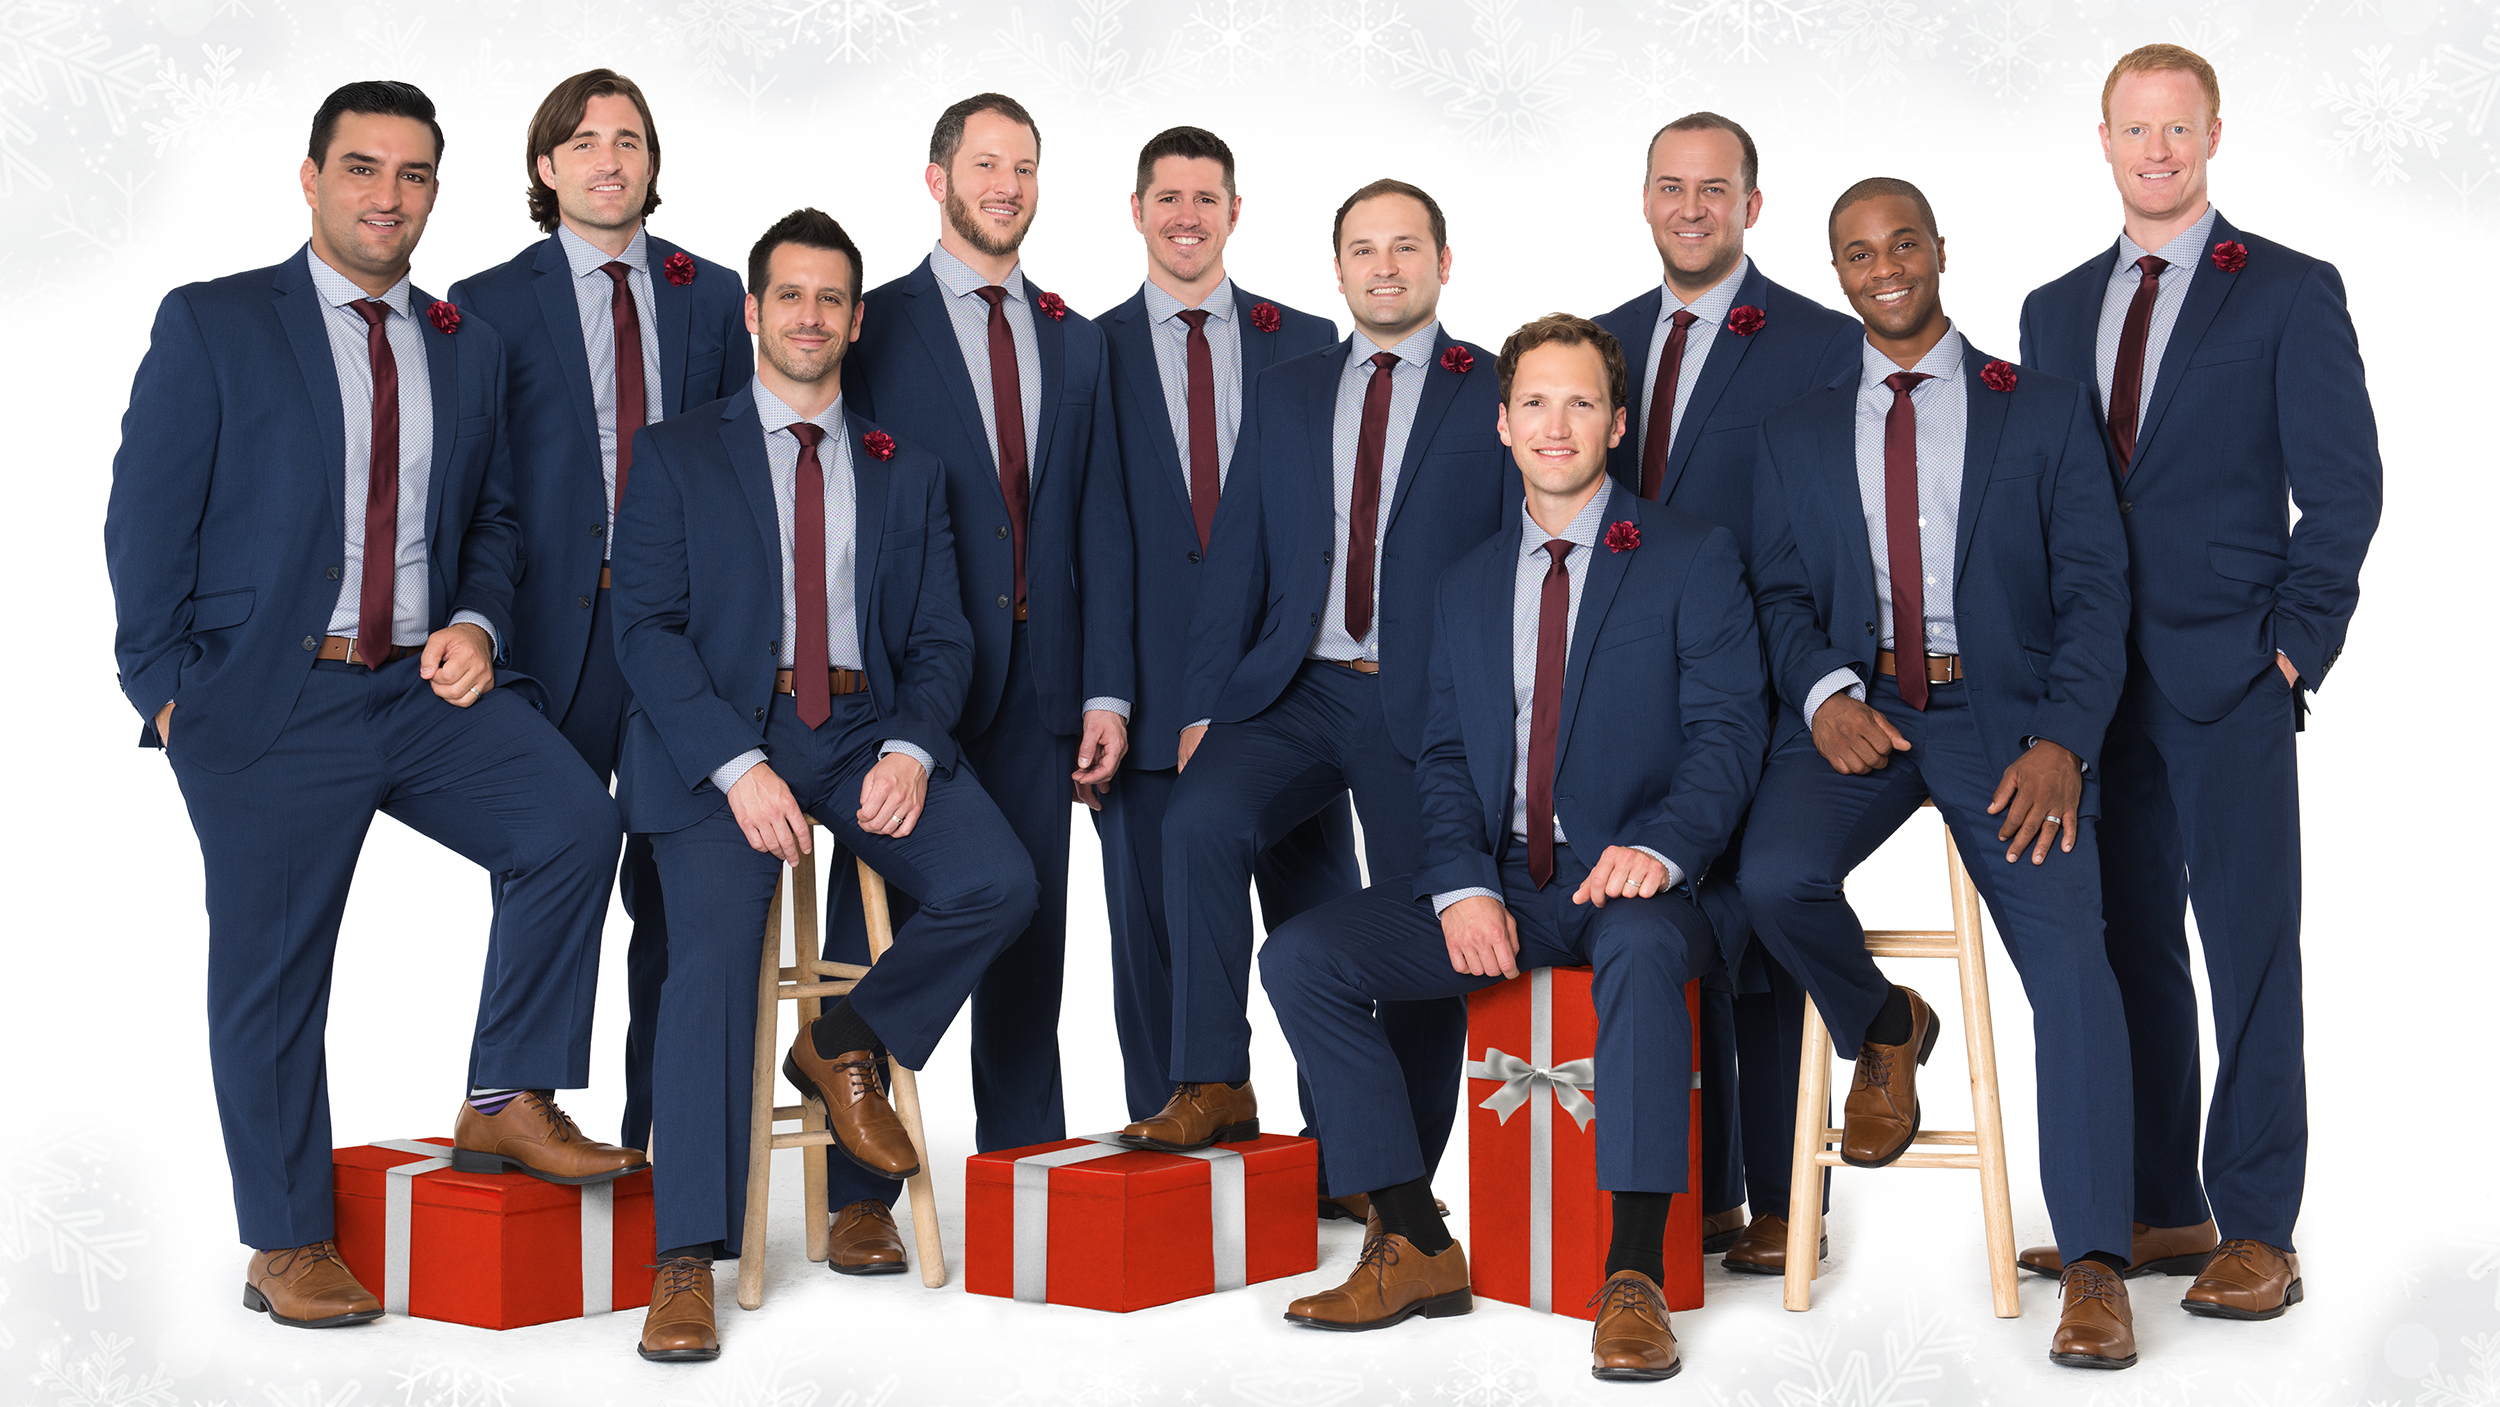 straight no chaser debuts adorable feels like christmas video